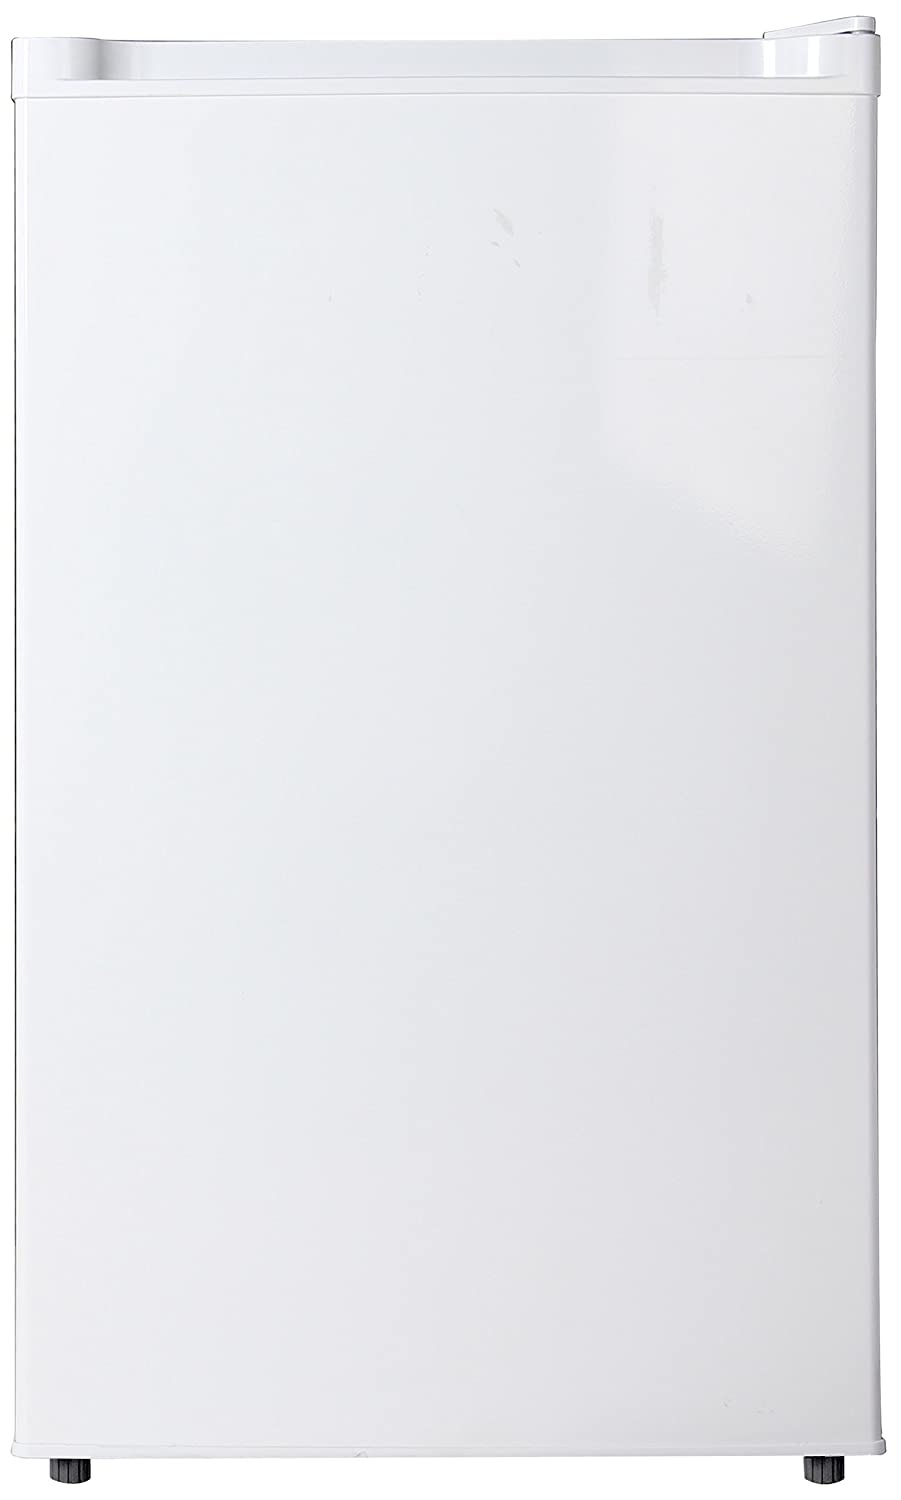 Midea WHS-160RW1 Compact Single Reversible Door Refrigerator and Freezer 4.4 Cubic Feet White